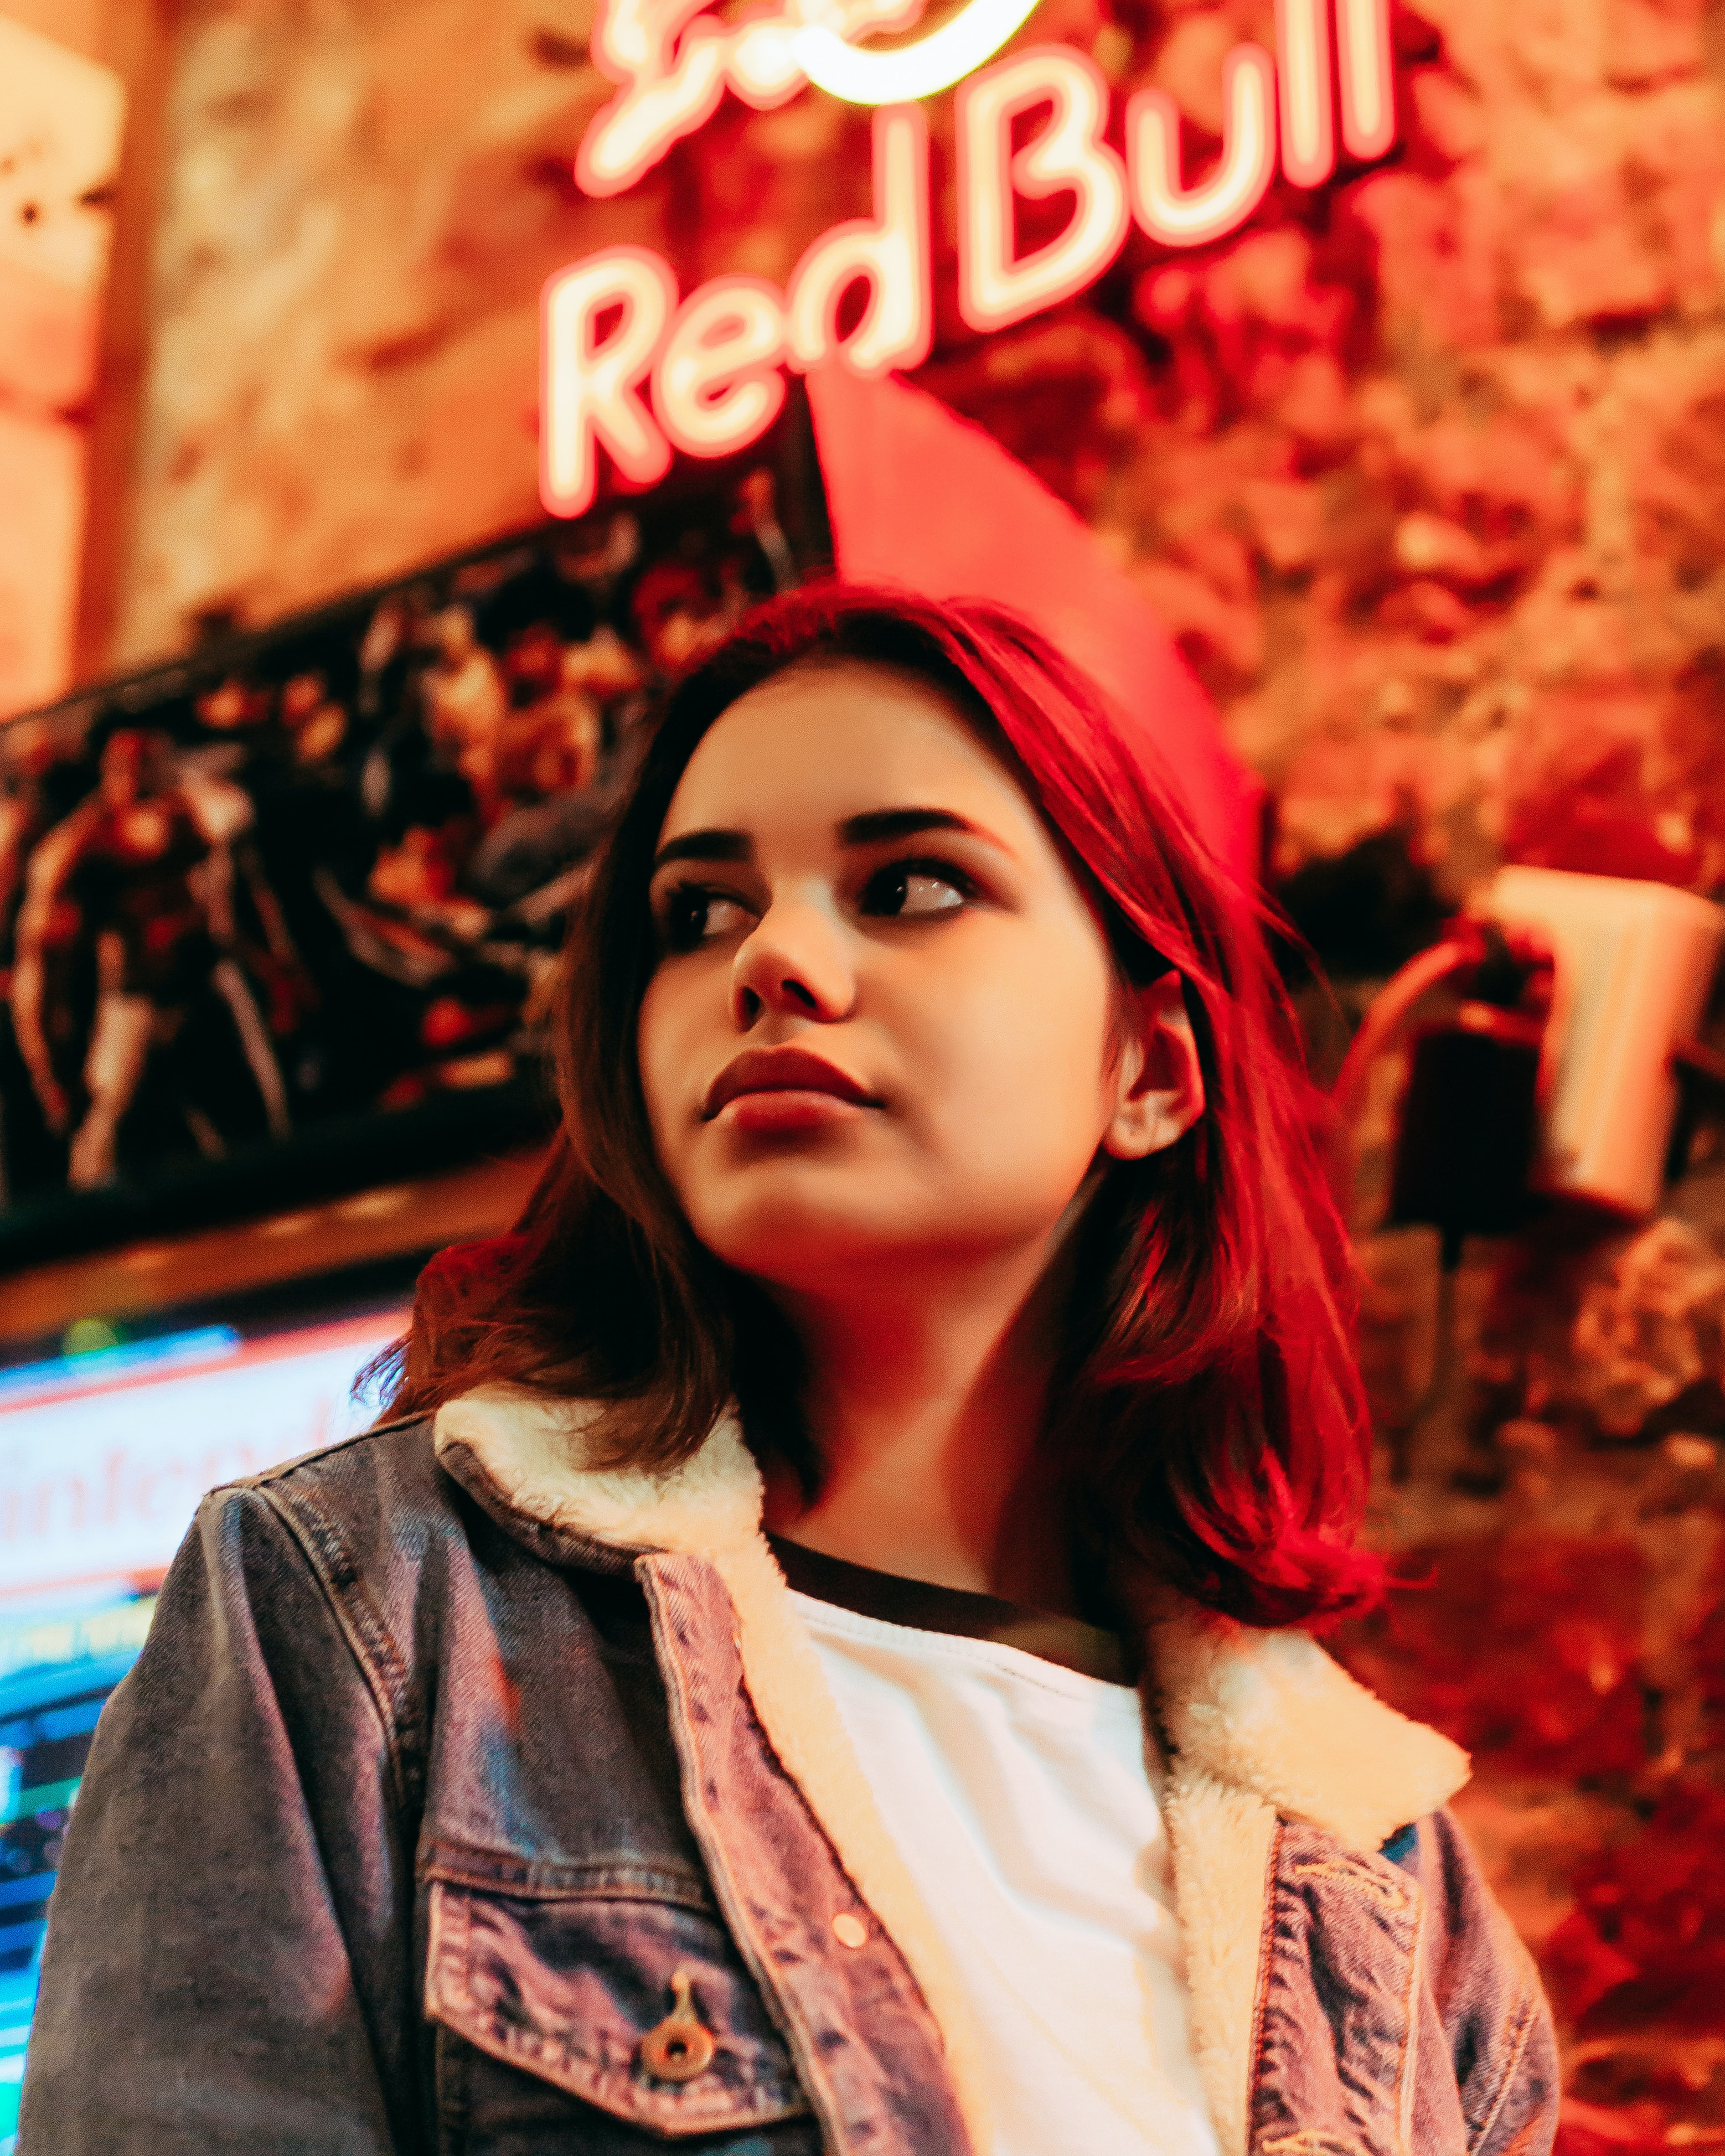 woman wearing blue denim jacket standing near the Red Bull neon light signage